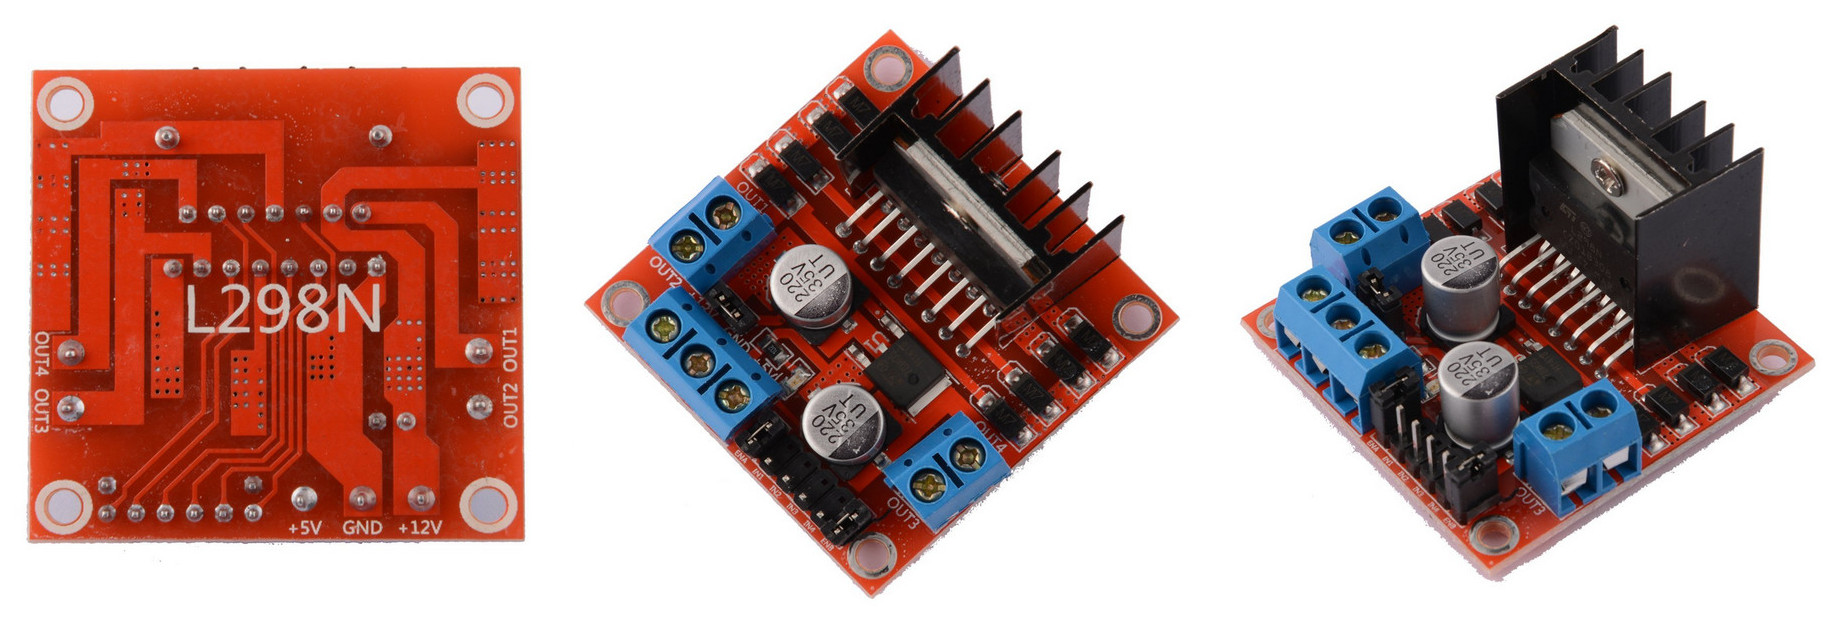 Roach V2 A Cheap Microbit Robot In Addition To This Circuit We Also Recommend The Other Dc Motor Figure 1 L298 Driver